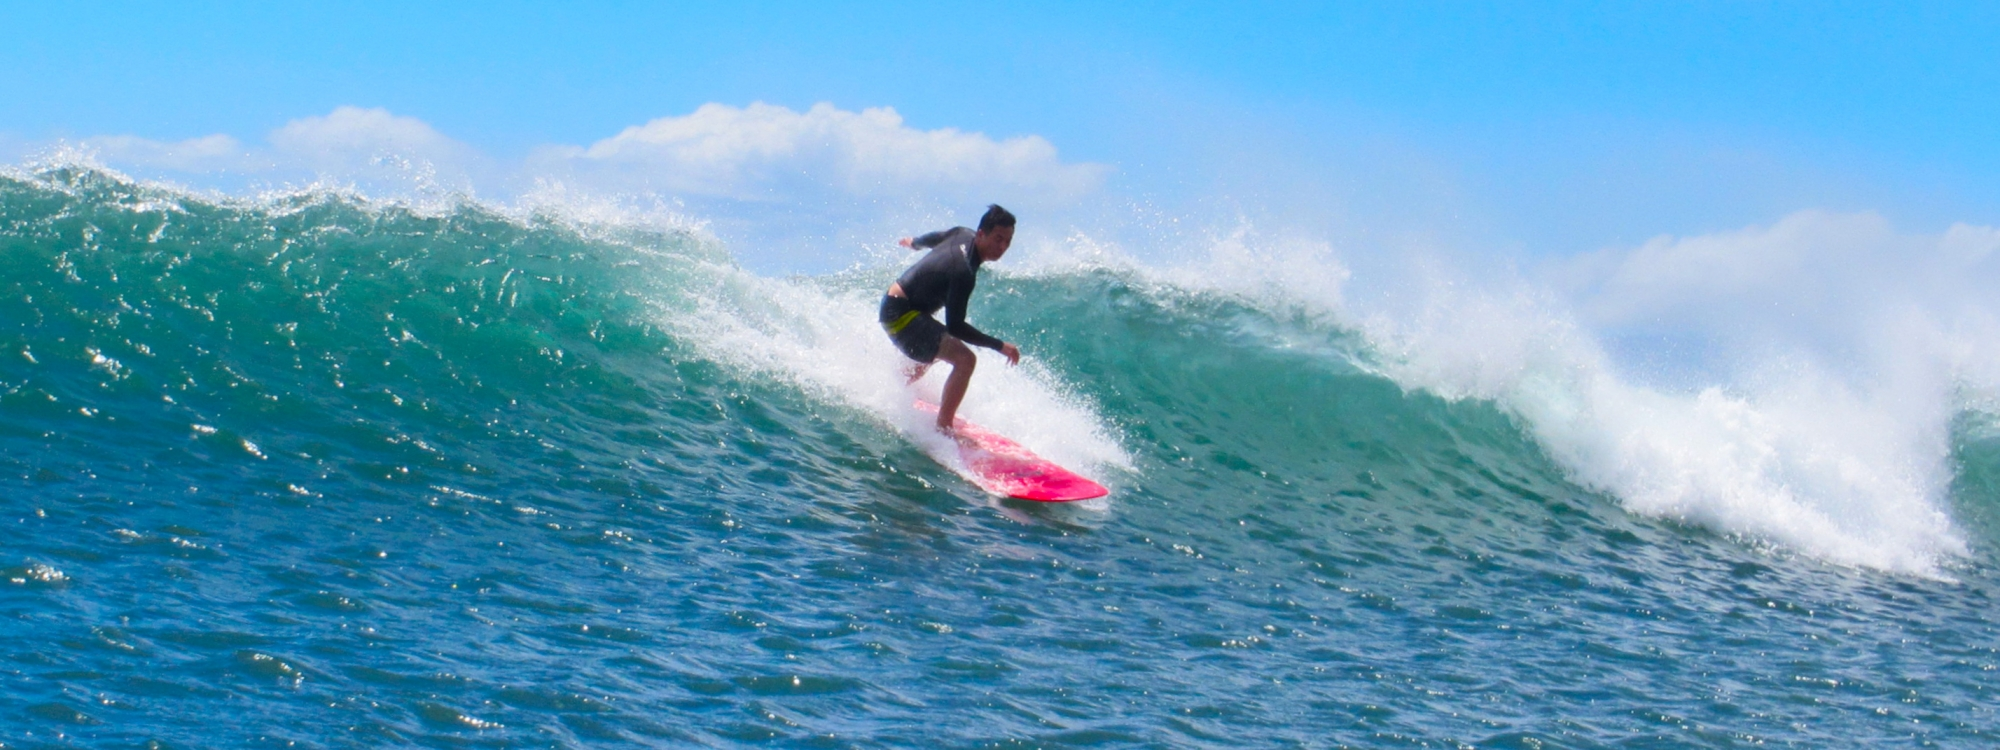 Surf Tour Guest Stephan Phan Enjoying Perfect Waves With No Crowds On Maui's South Shore.